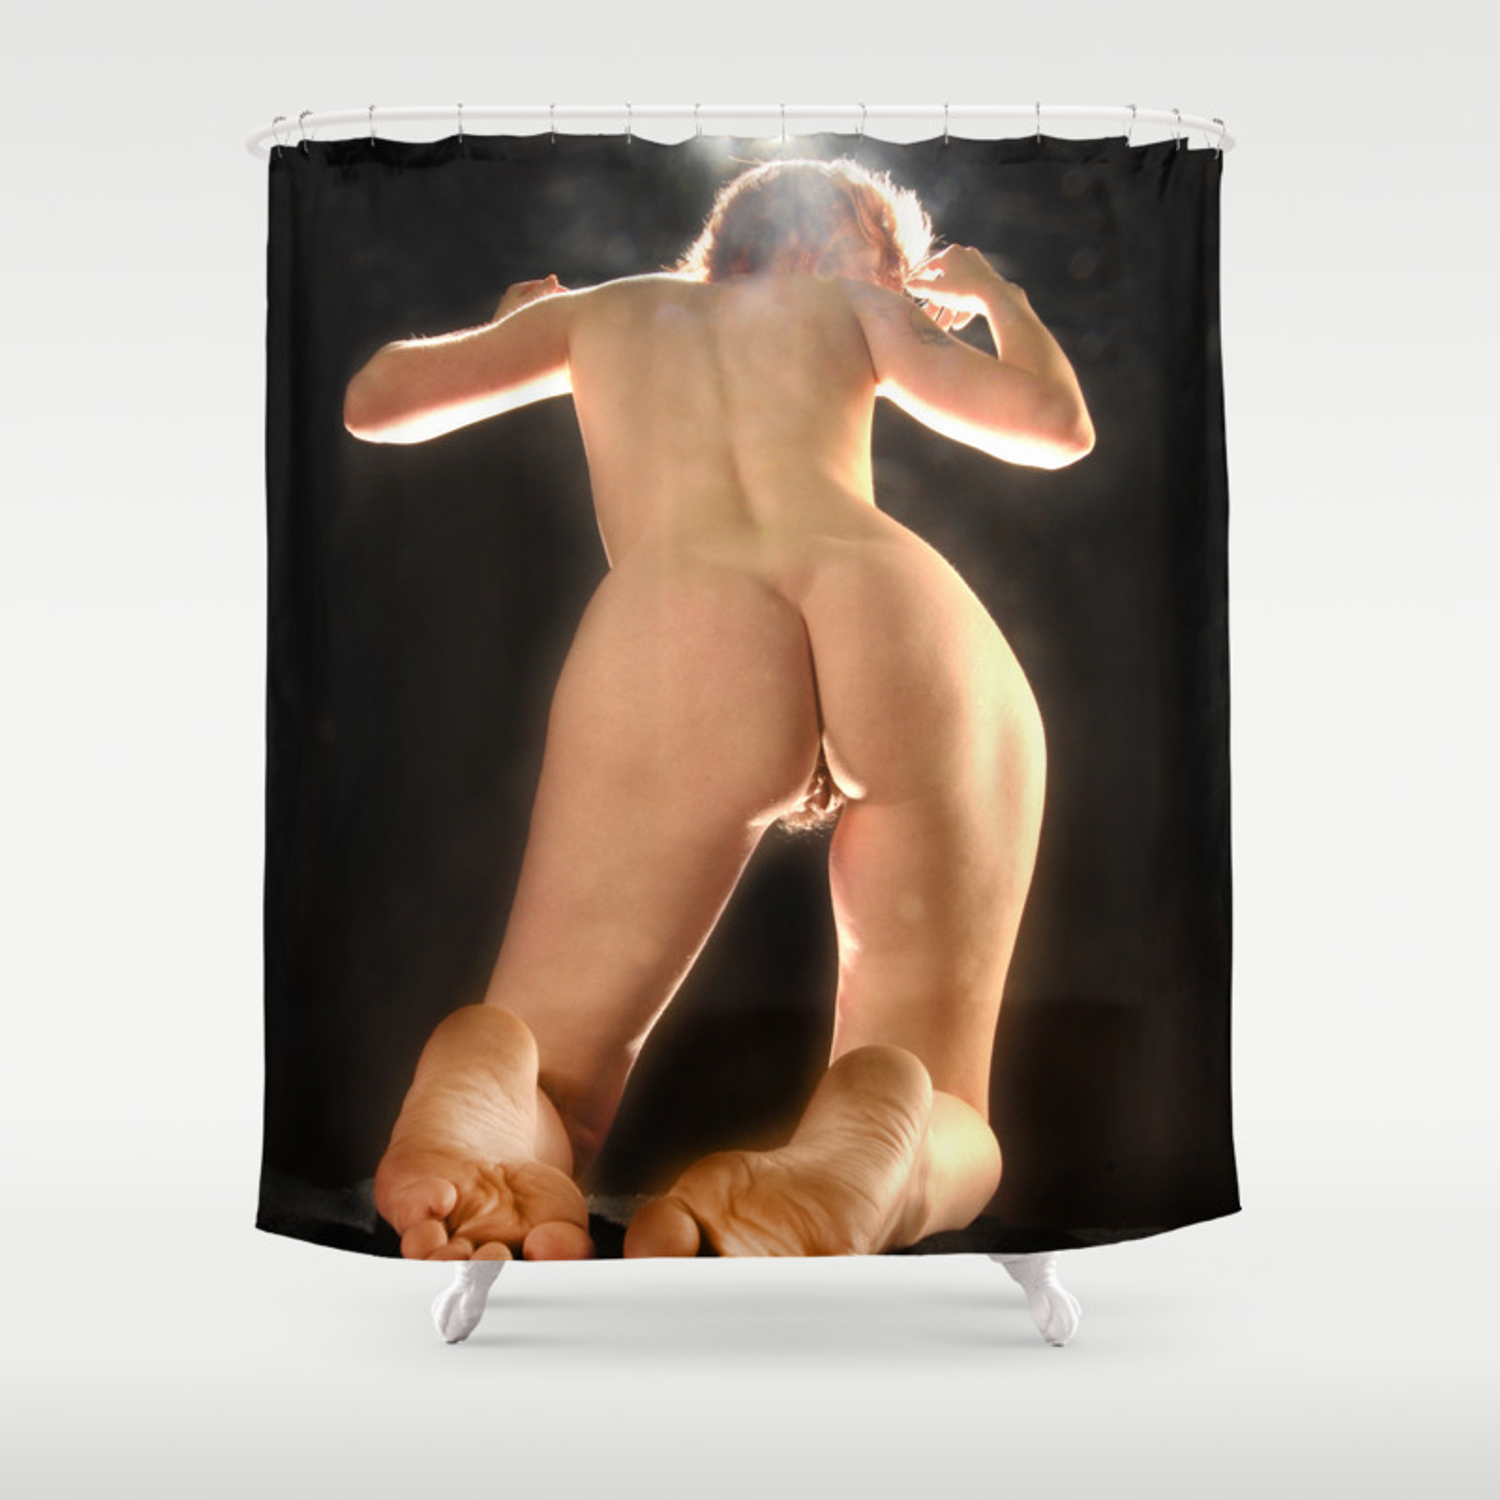 Ams Nude 5936-ams art nude model from below rear view toes feet bum back shower  curtain